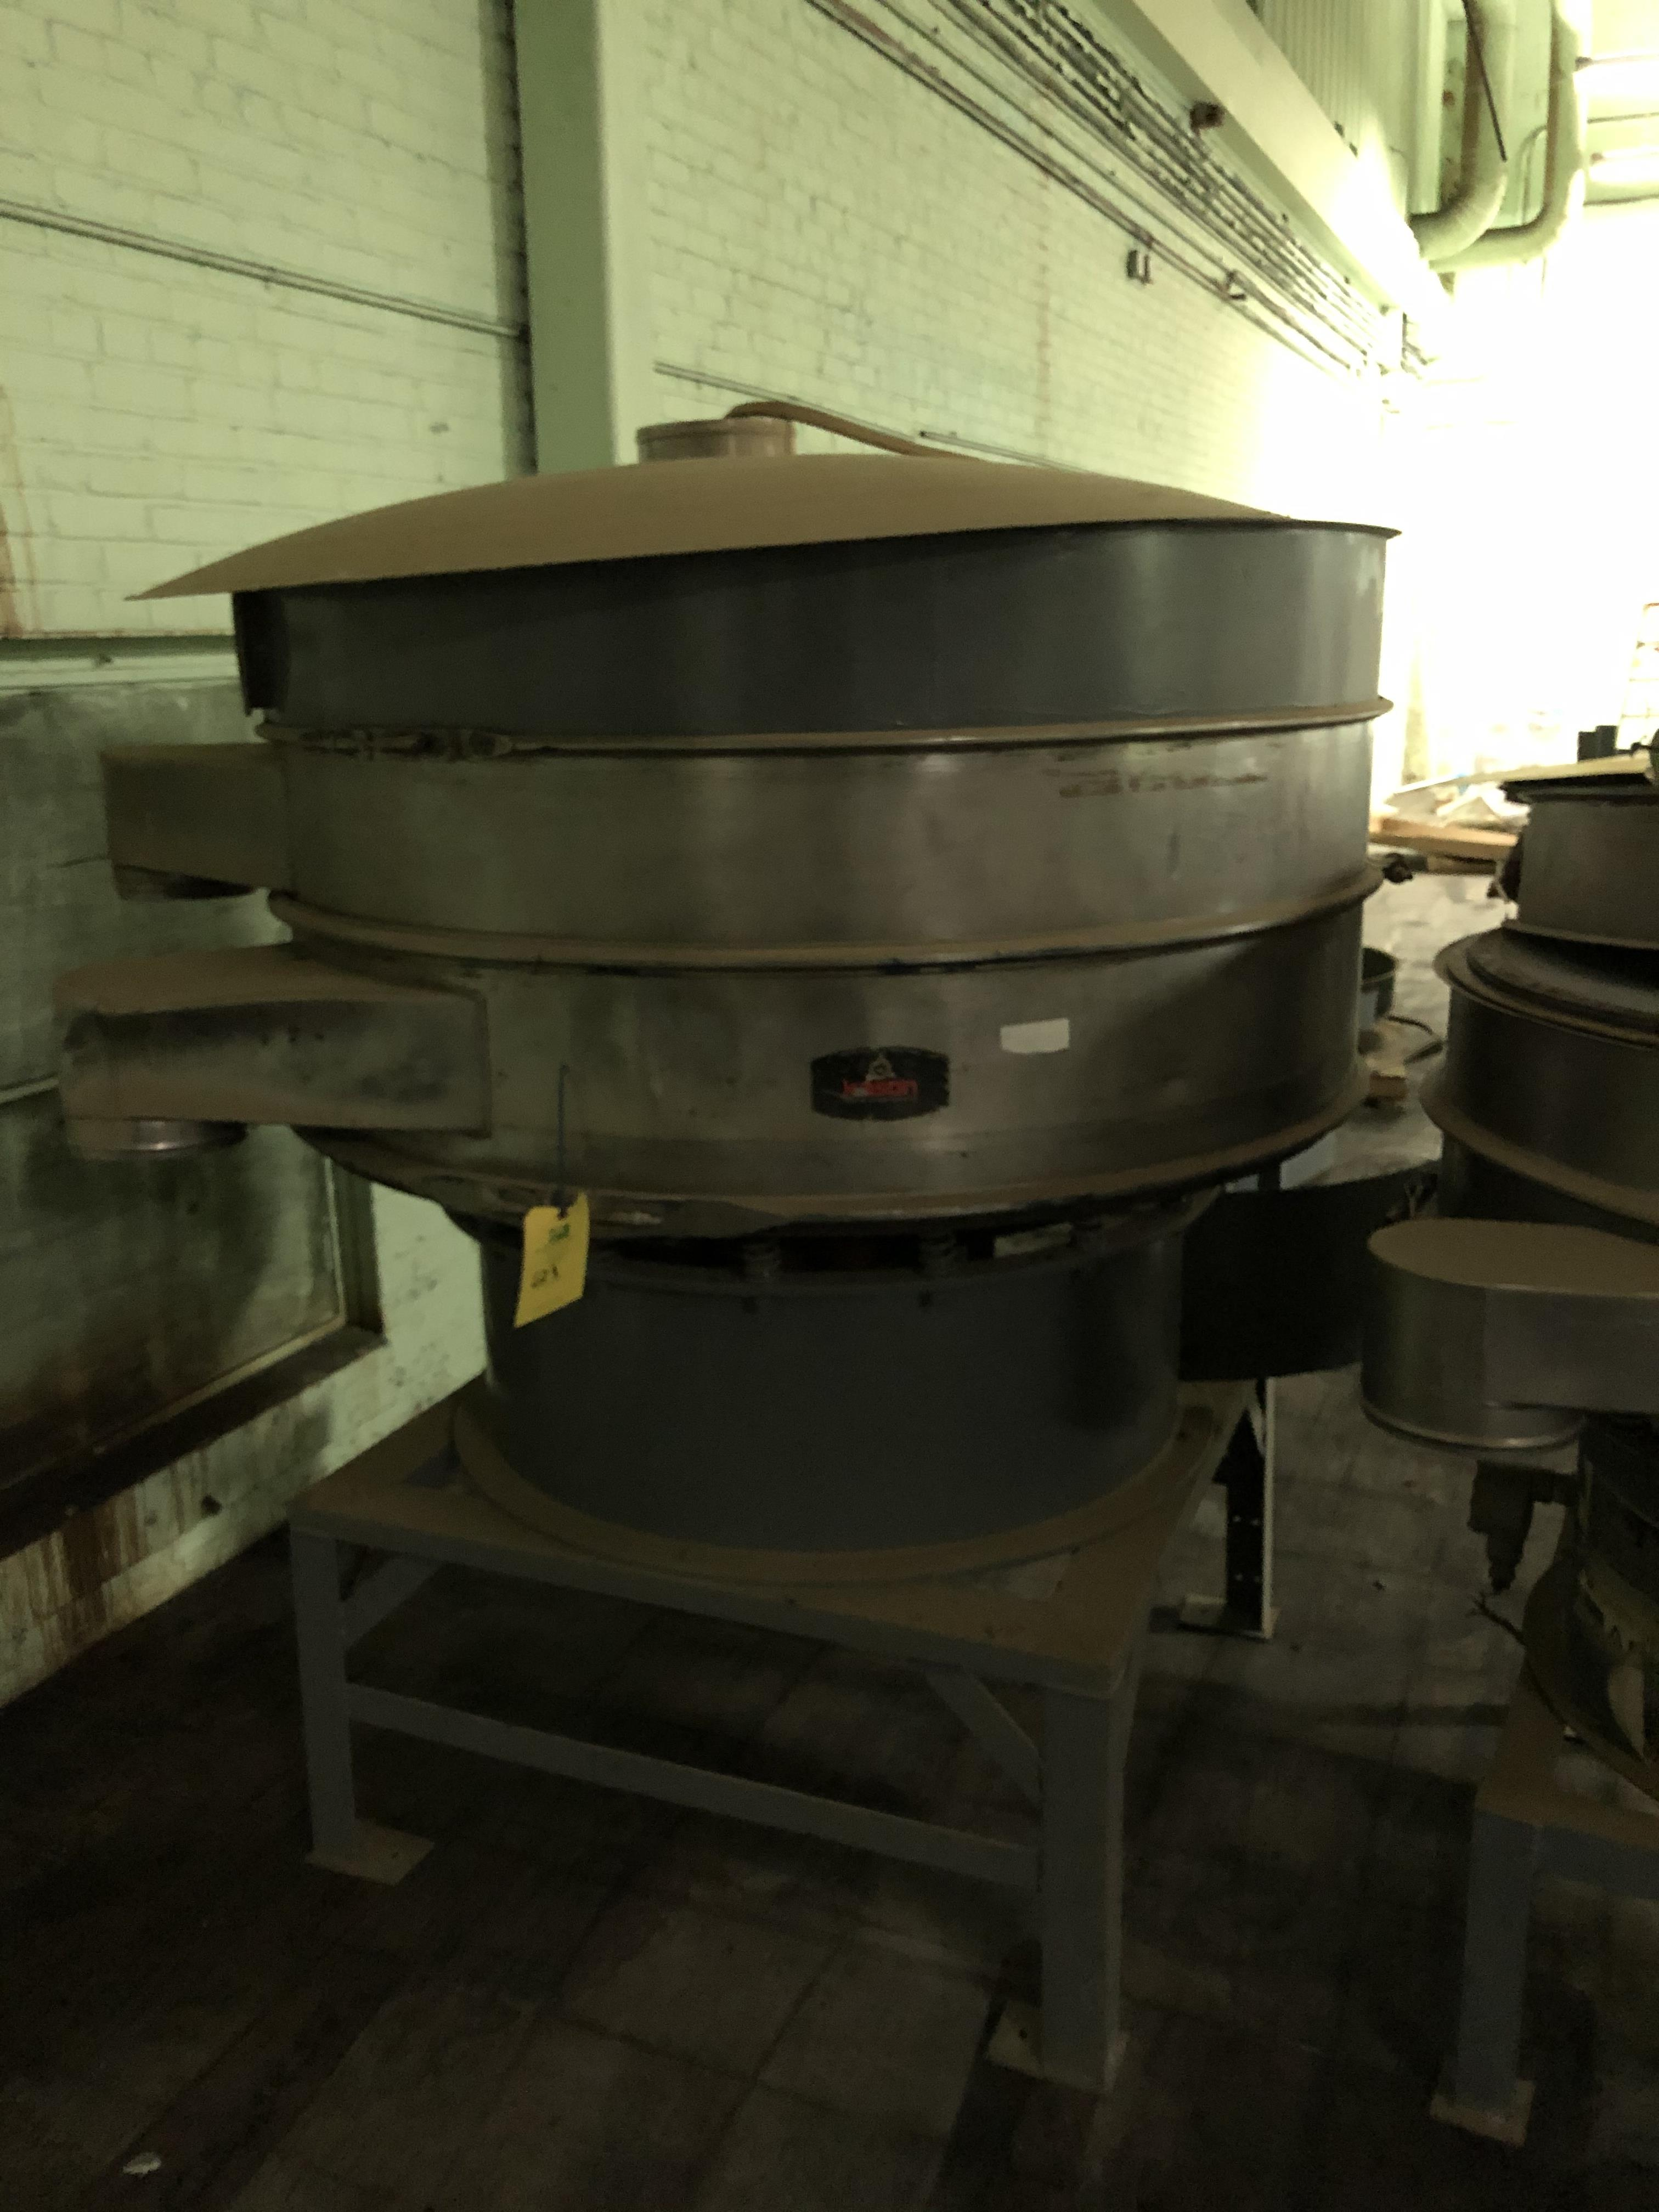 "Kason Model K-60-1-SS Vibratory Screen Separator, 60"" Diameter, SN 4020, RIGGING FEE - $100 - Image 2 of 3"